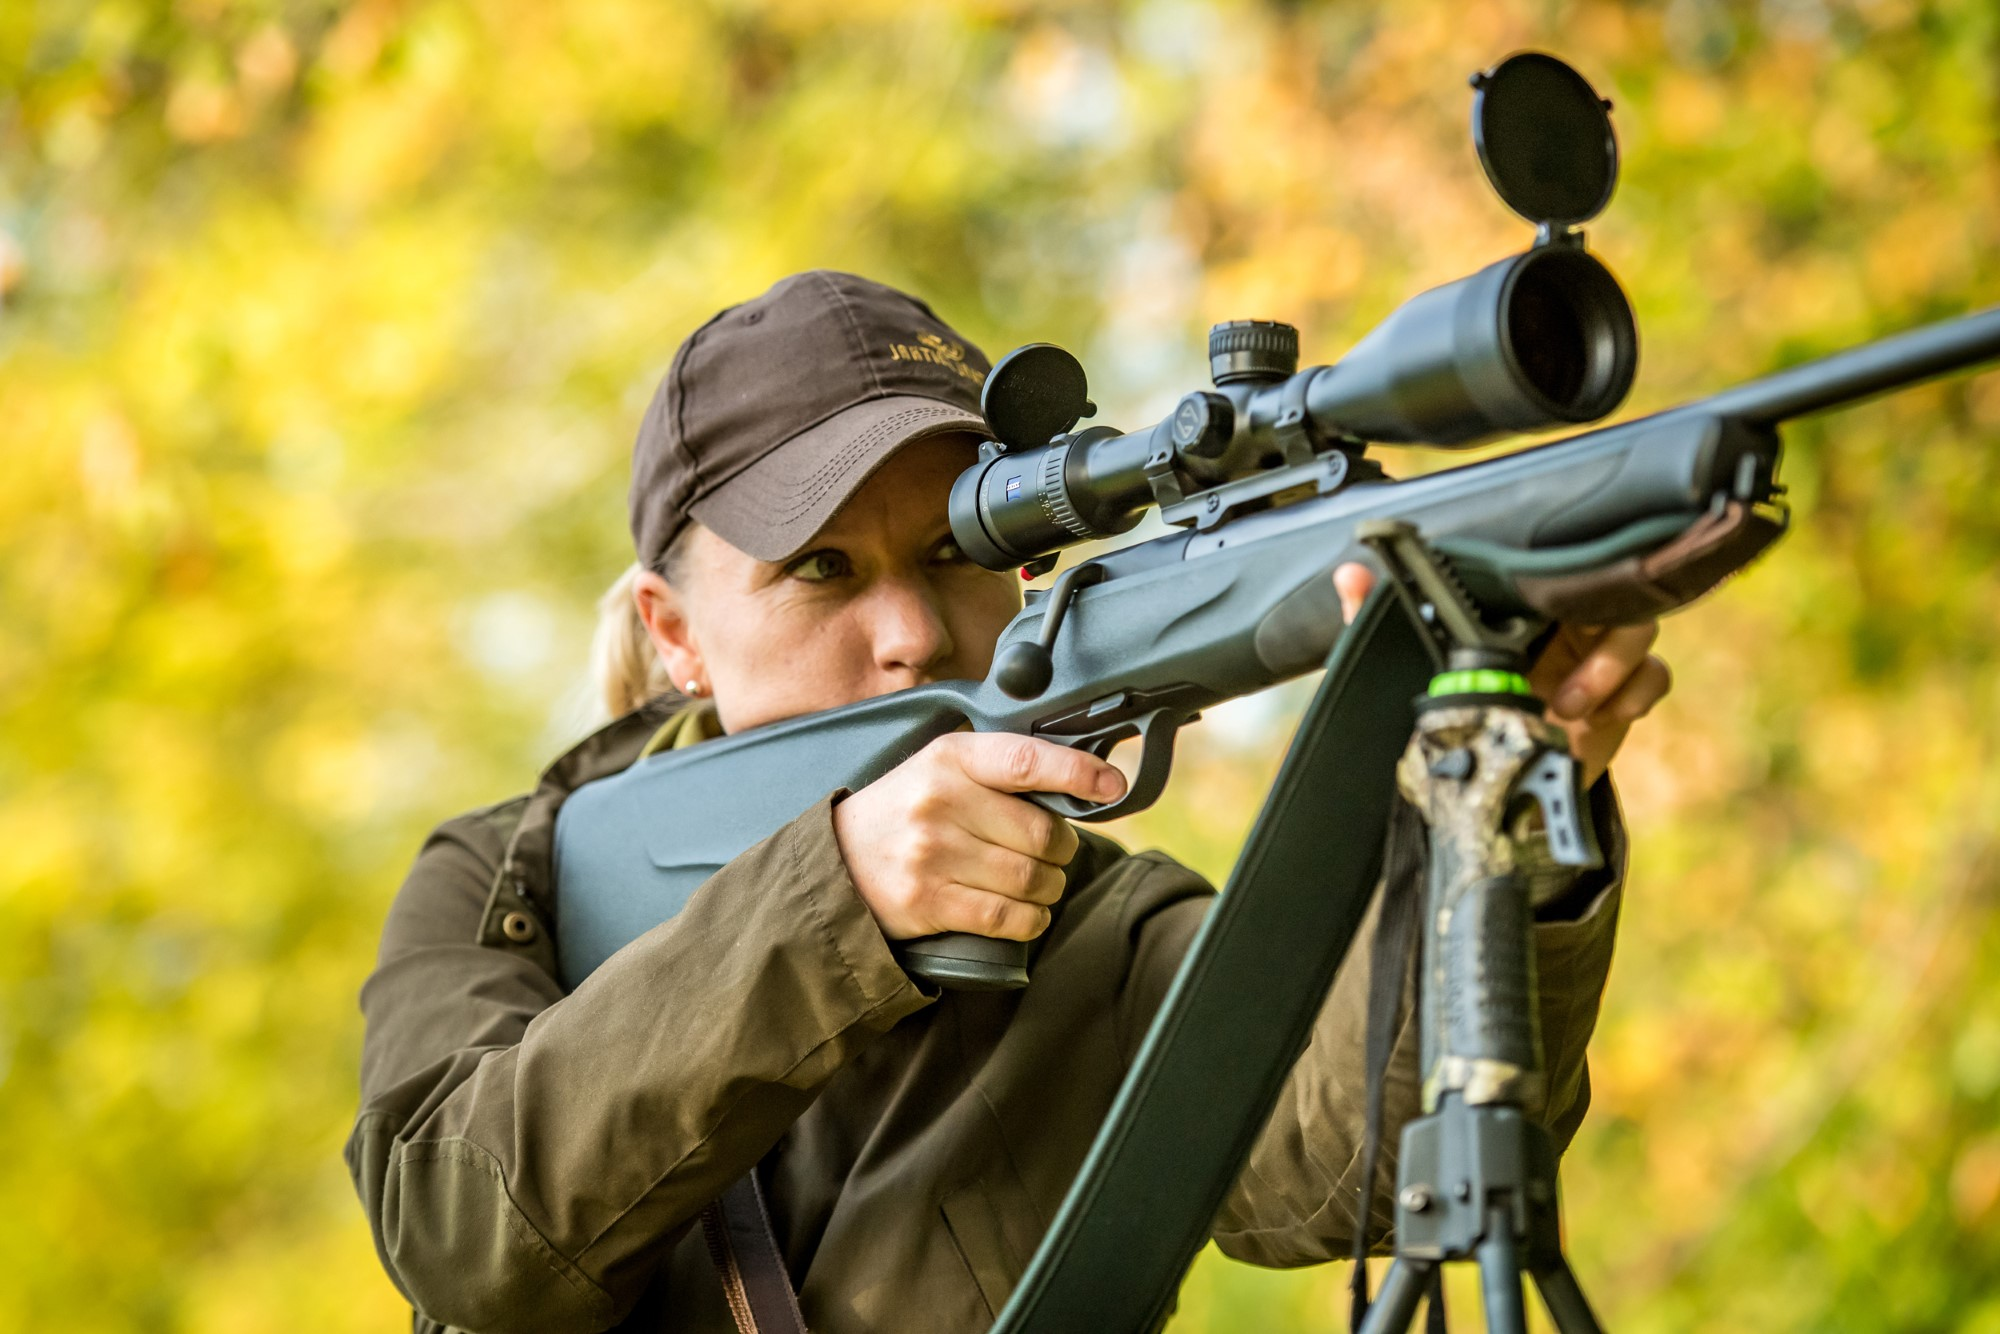 Huntress with a Blaser R8 in 30-06 with a Zeiss scope. Photo credtit: Sarah Farnsworth.